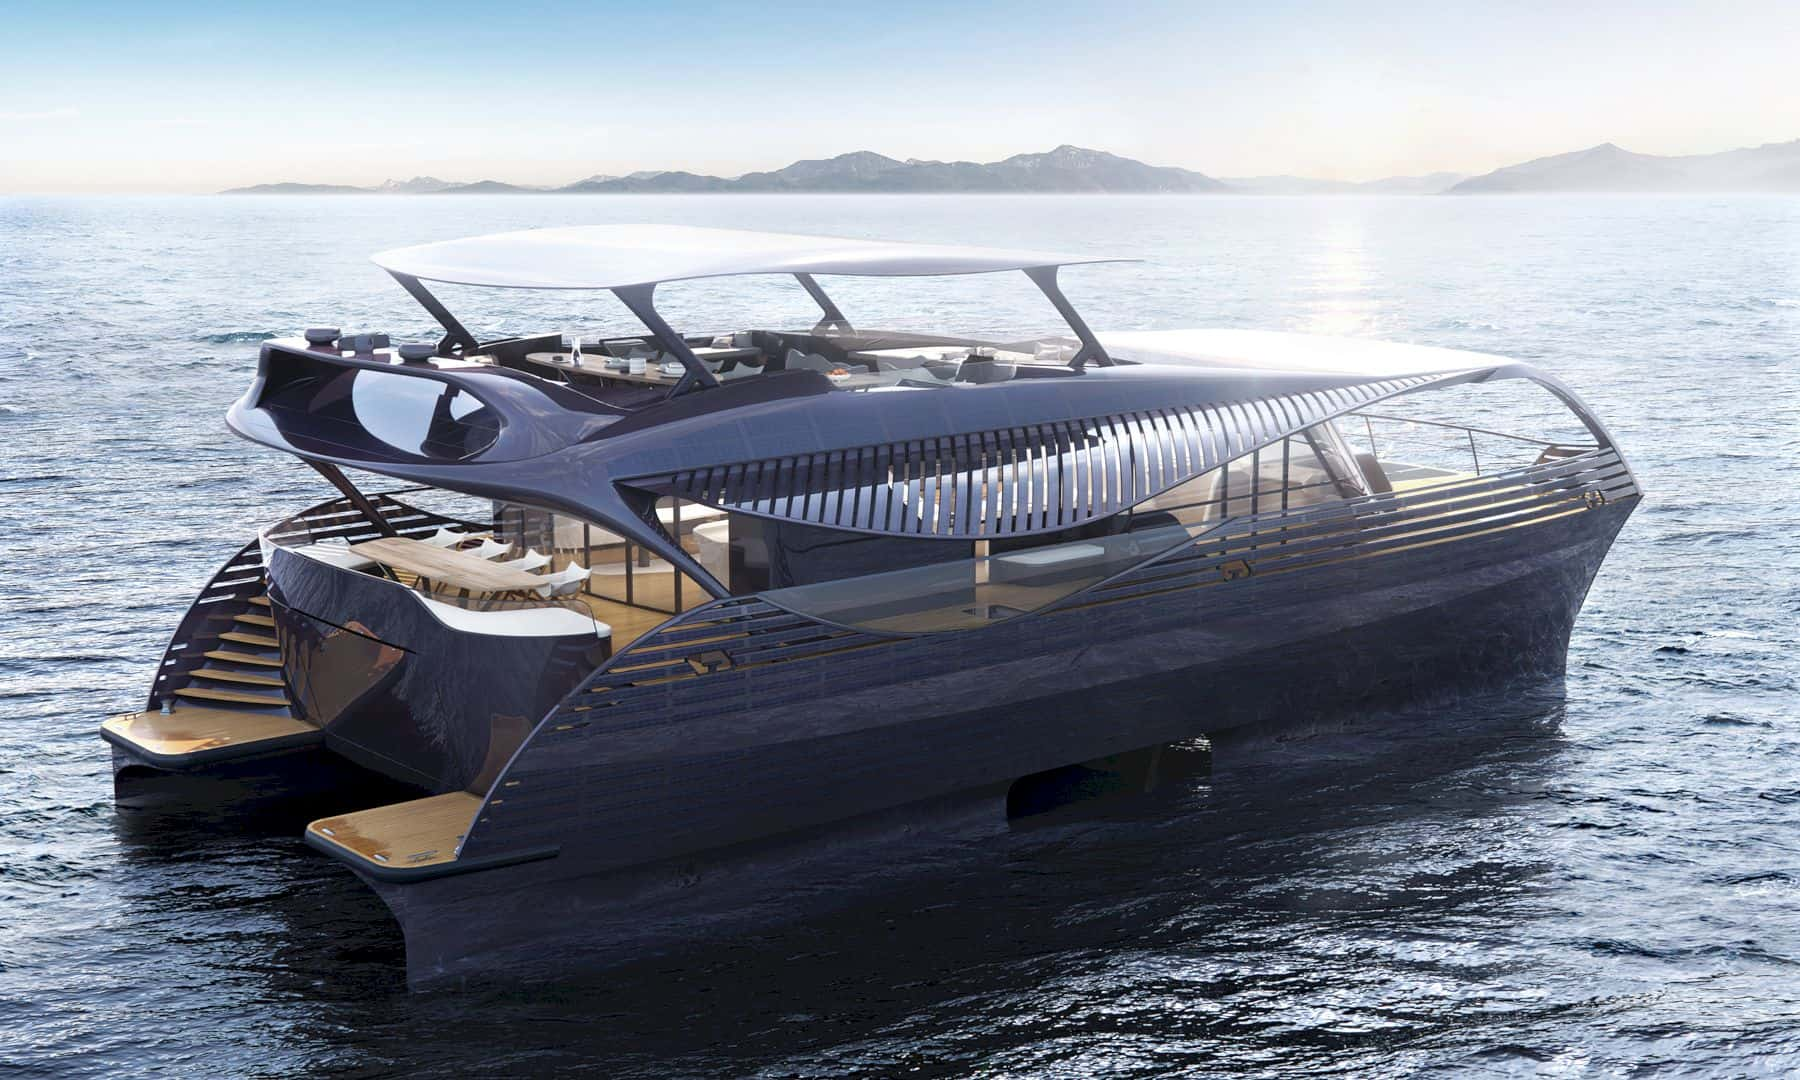 Solar Impact Yacht: The Exclusive Experience that Inspires